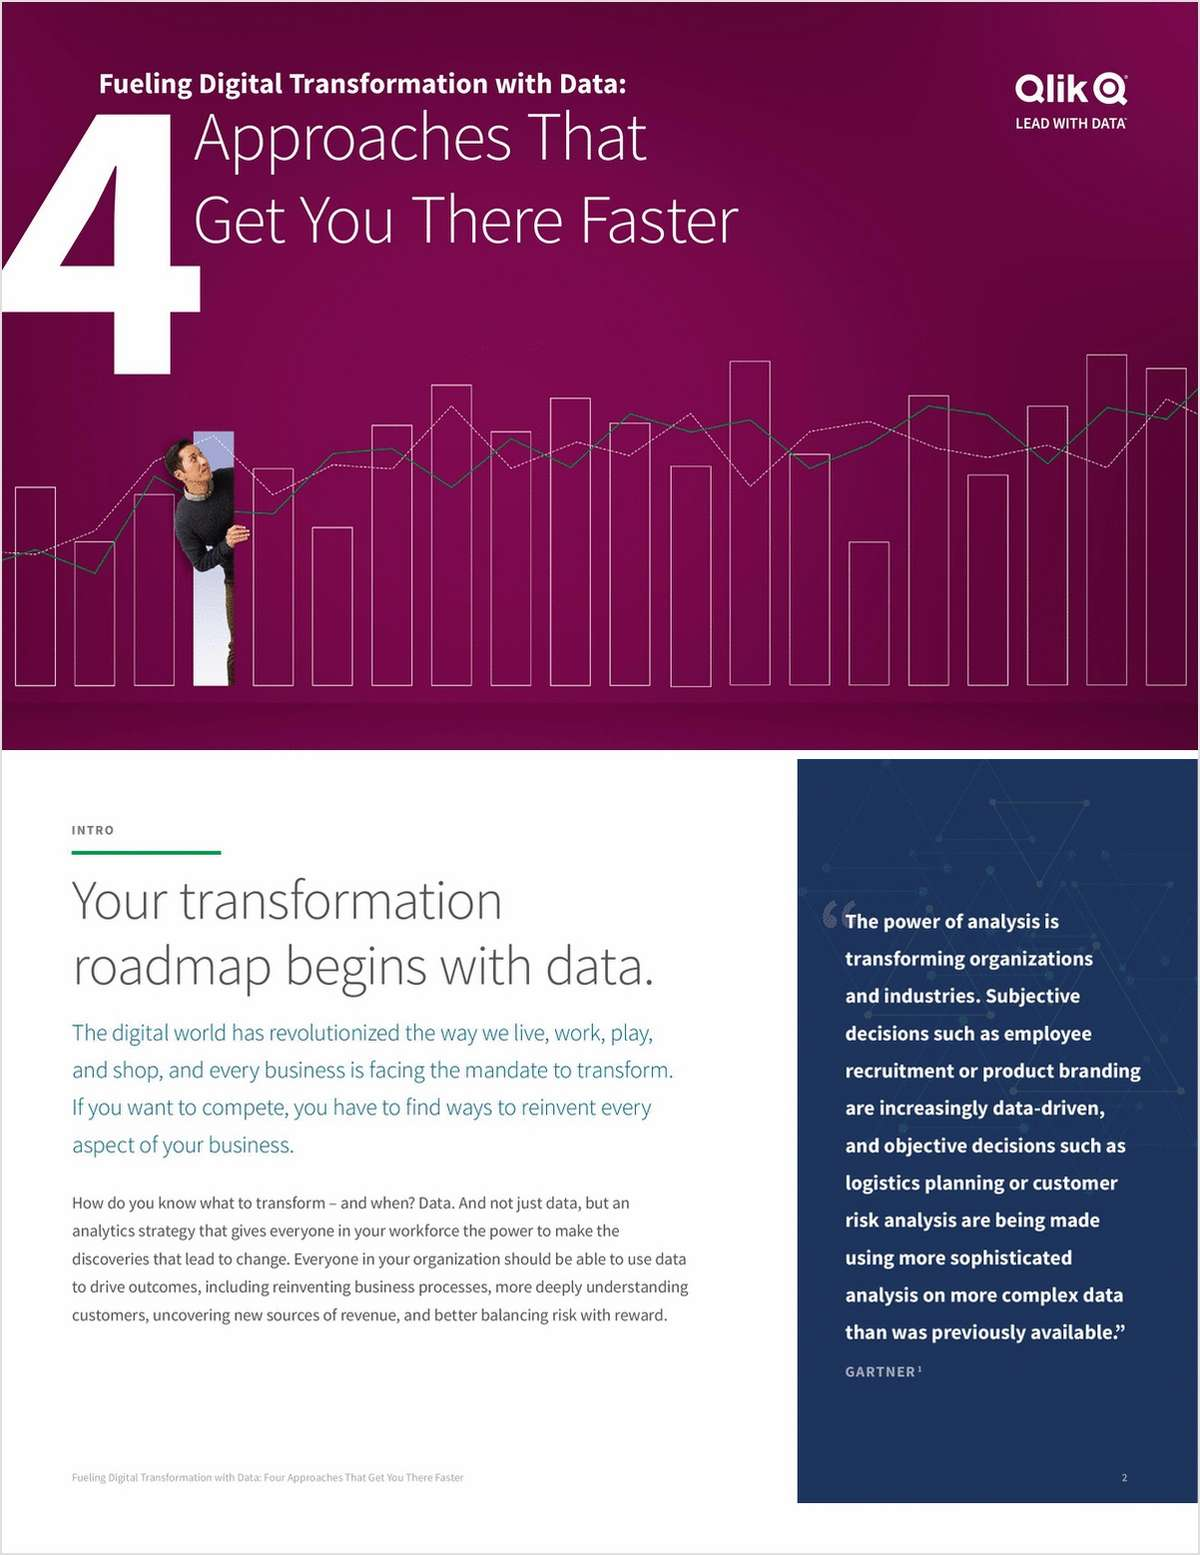 Fueling Digital Transformation with Data- Four Approaches that Get You There Faster